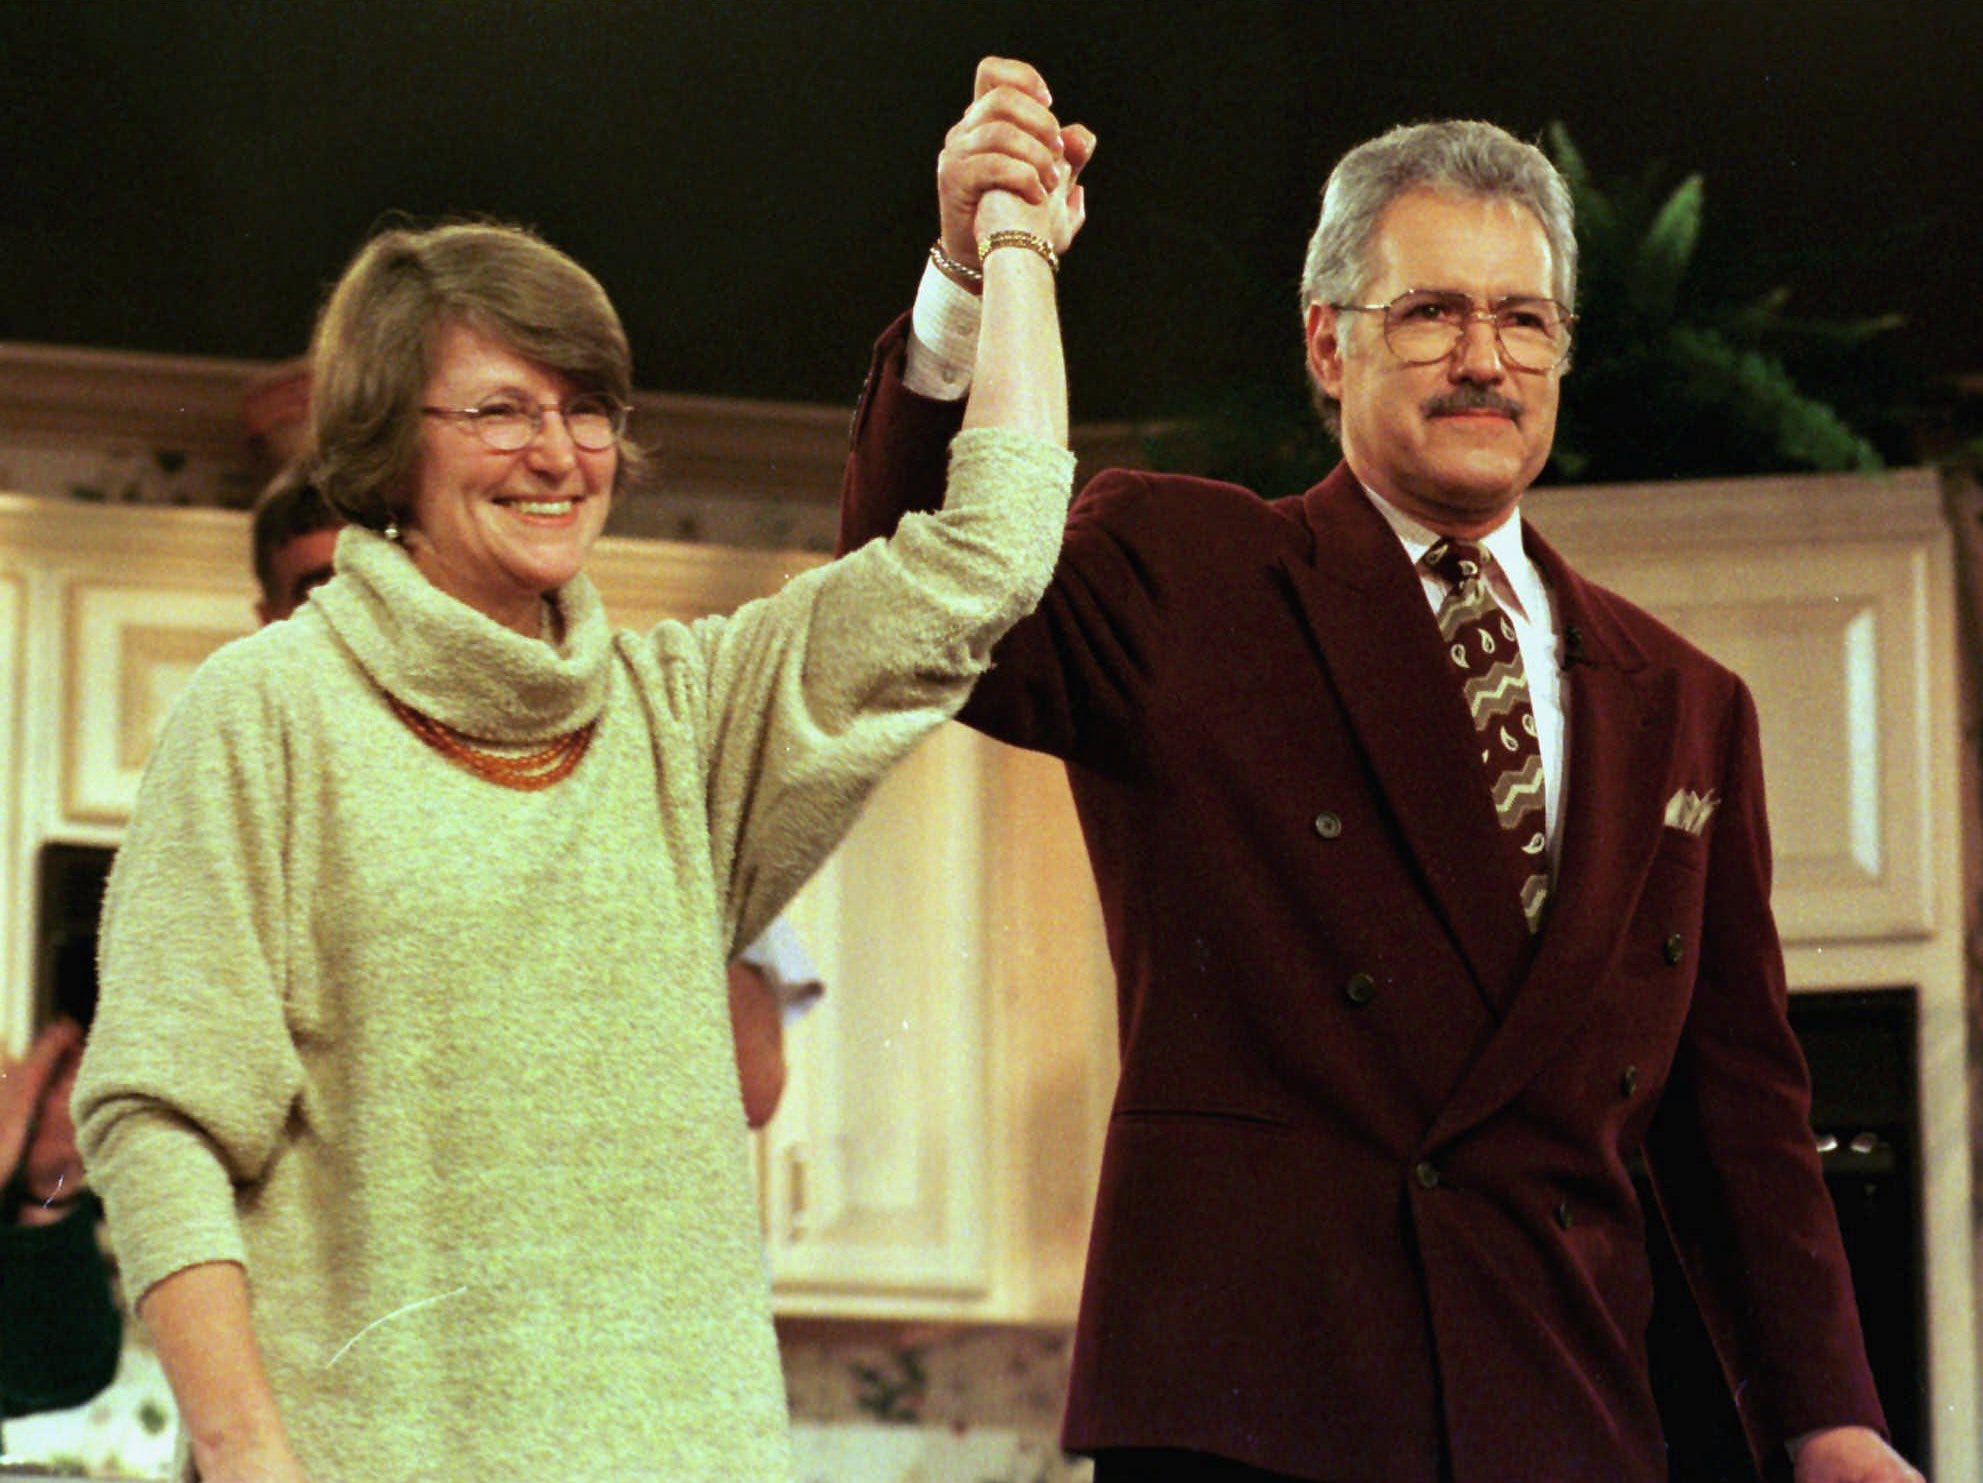 Alex Trebek and the 38th Pillsbury Quick & Easy Bake-Off winner Ellie Mathews of Seattle, raise their hands in victory Tuesday, Feb. 24, 1998, in Orlando, Fla. Trebek hosted the live television show where Mathews was named the winner of the $1 million grand prize for the best recipe cooking competition.